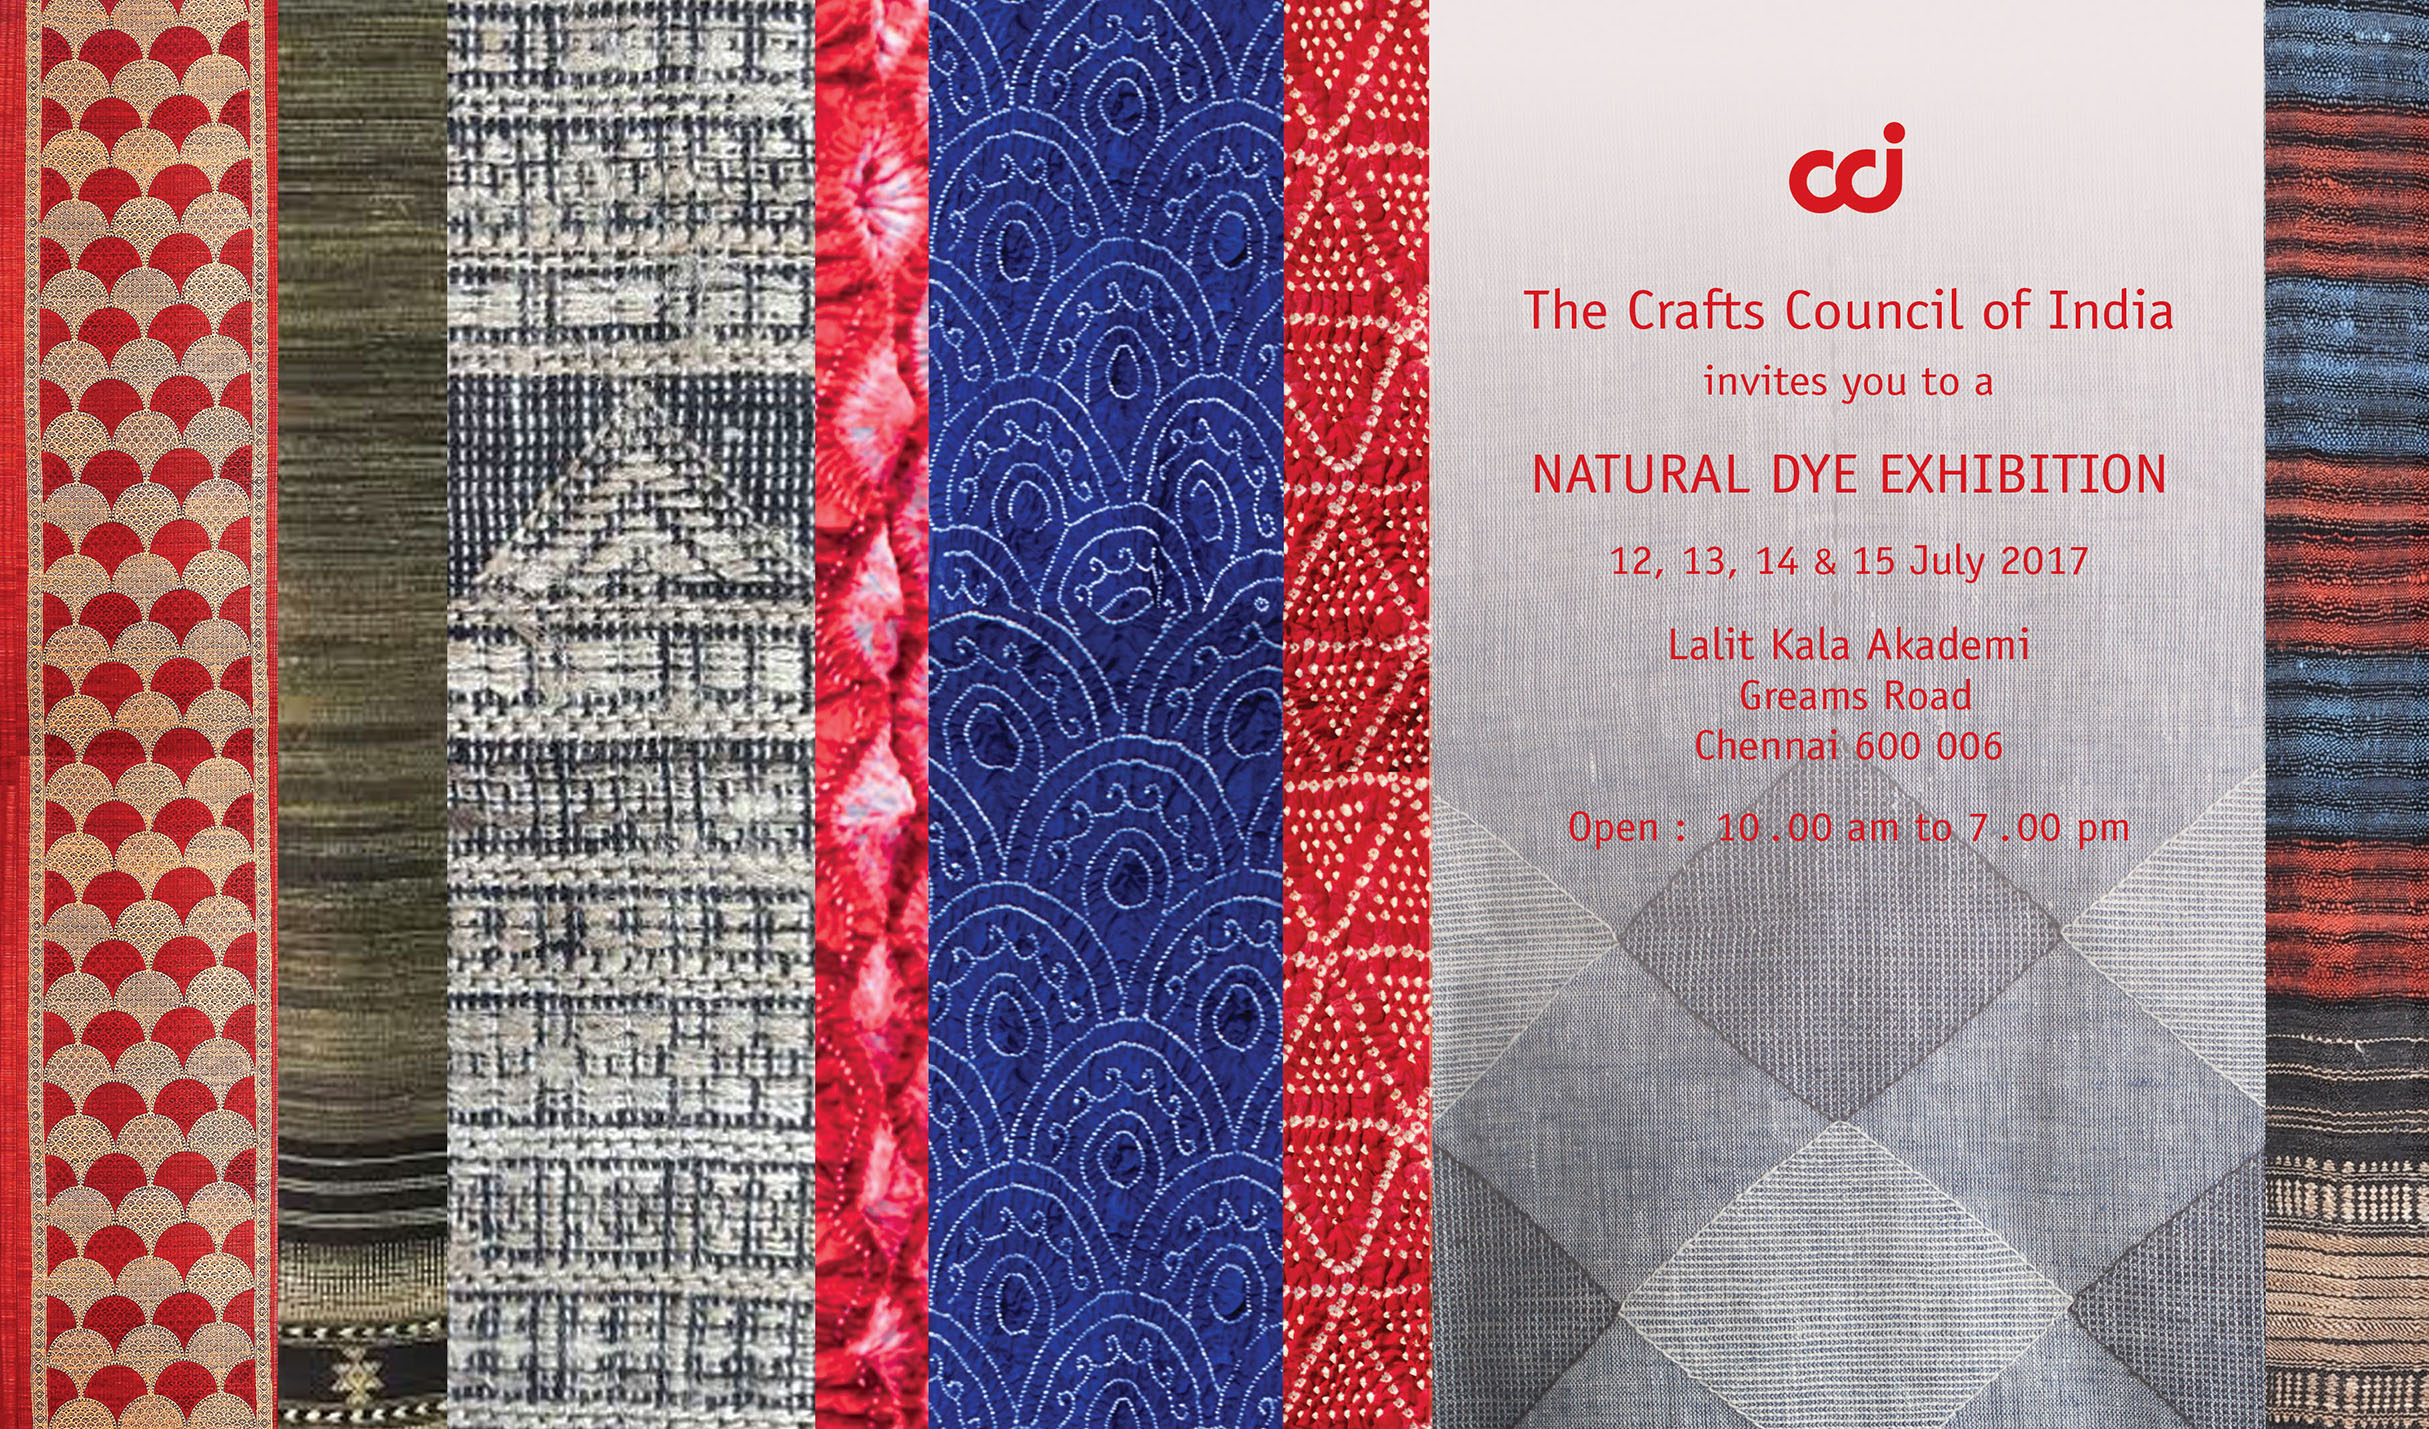 Natural Dye Exhibition.indd